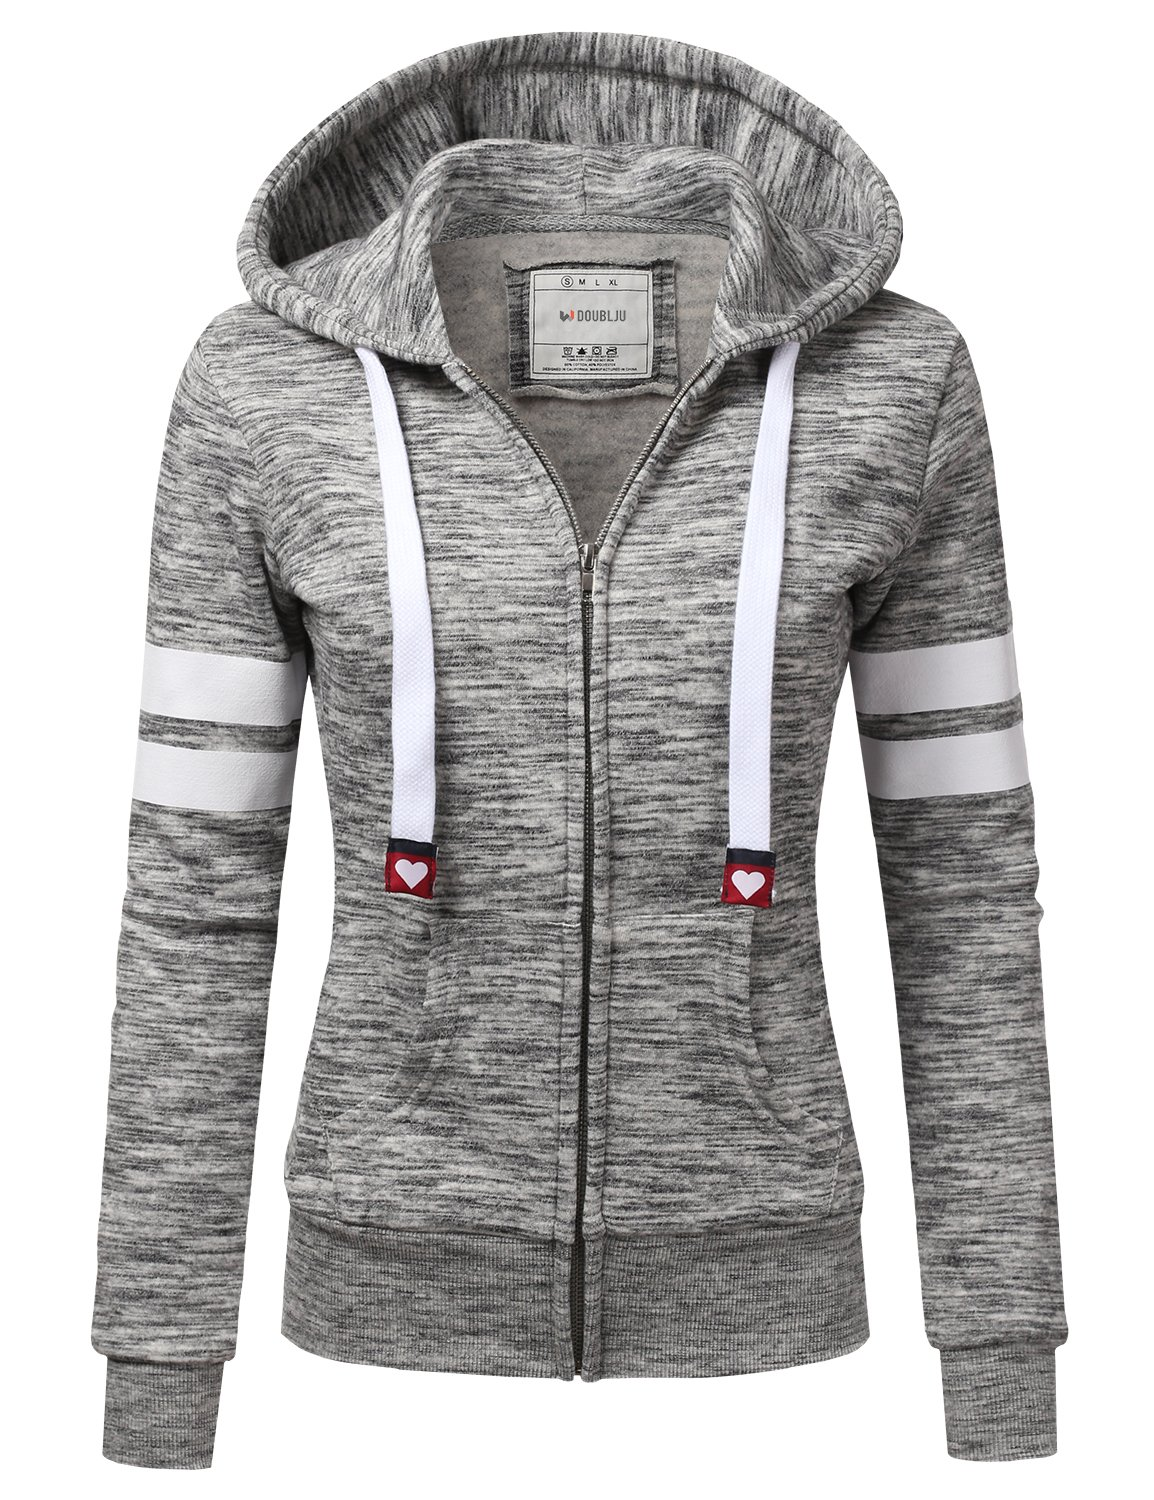 Doublju Lightweight Thin Zip-Up Hoodie Jacket for Women with Plus Size MARLEDCHARCOAL Large